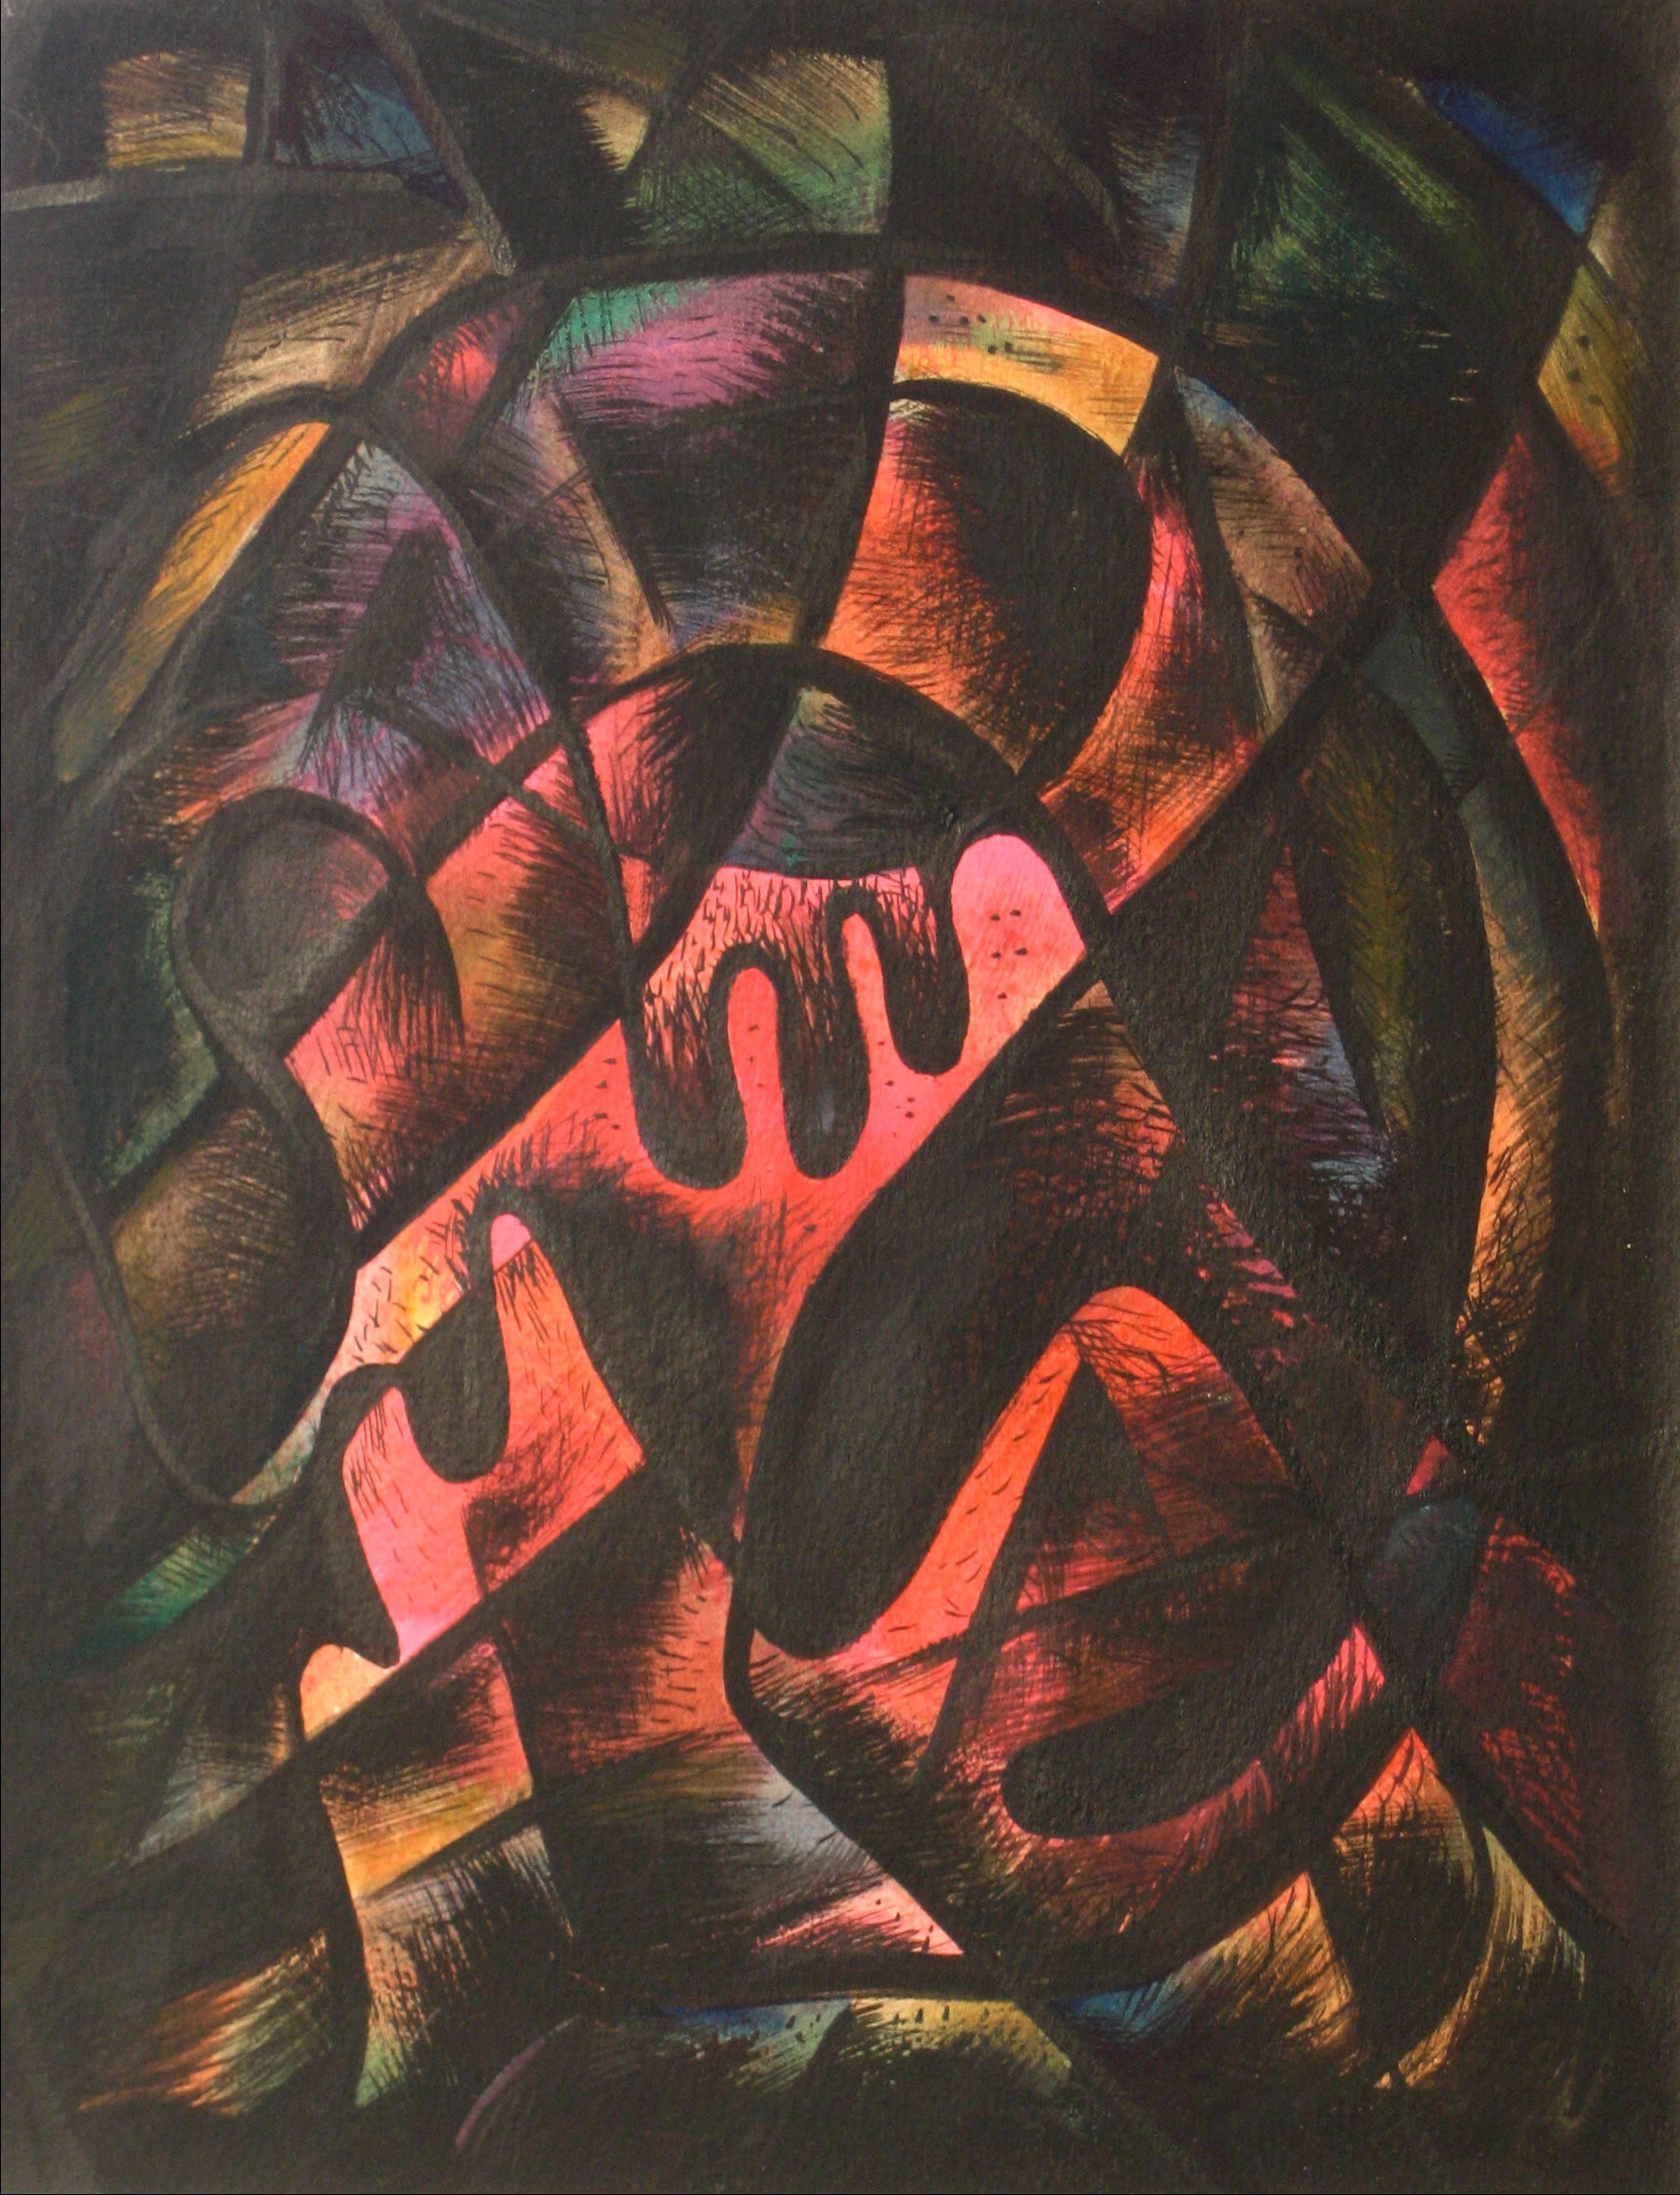 Neon Surrealist Abstract<br>1940s, Tempera Paint on Paper<br><br>#13529